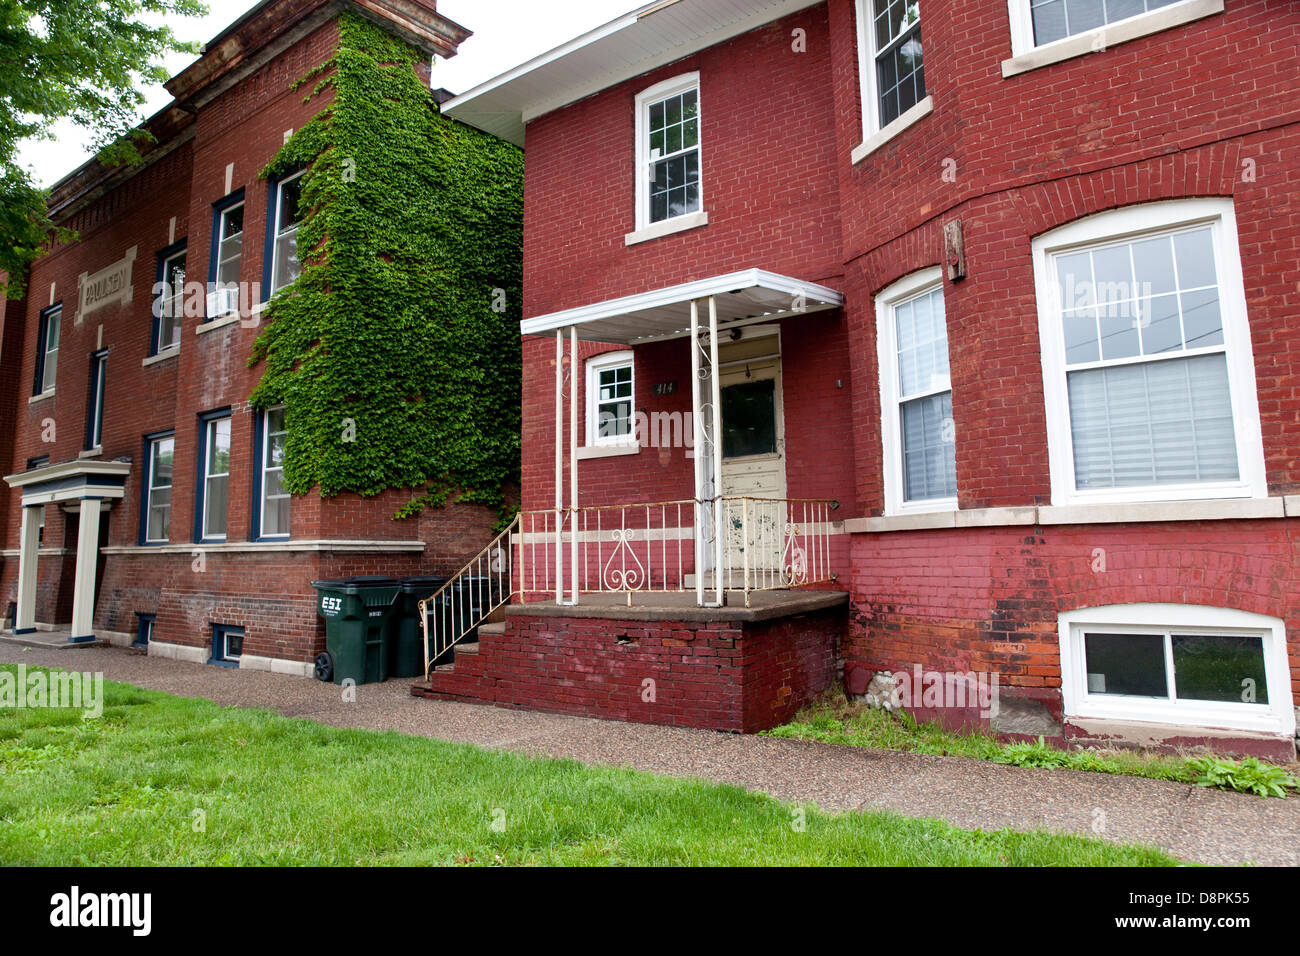 Photo Of A Row Of Old, Run Down Brick Apartment Buildings